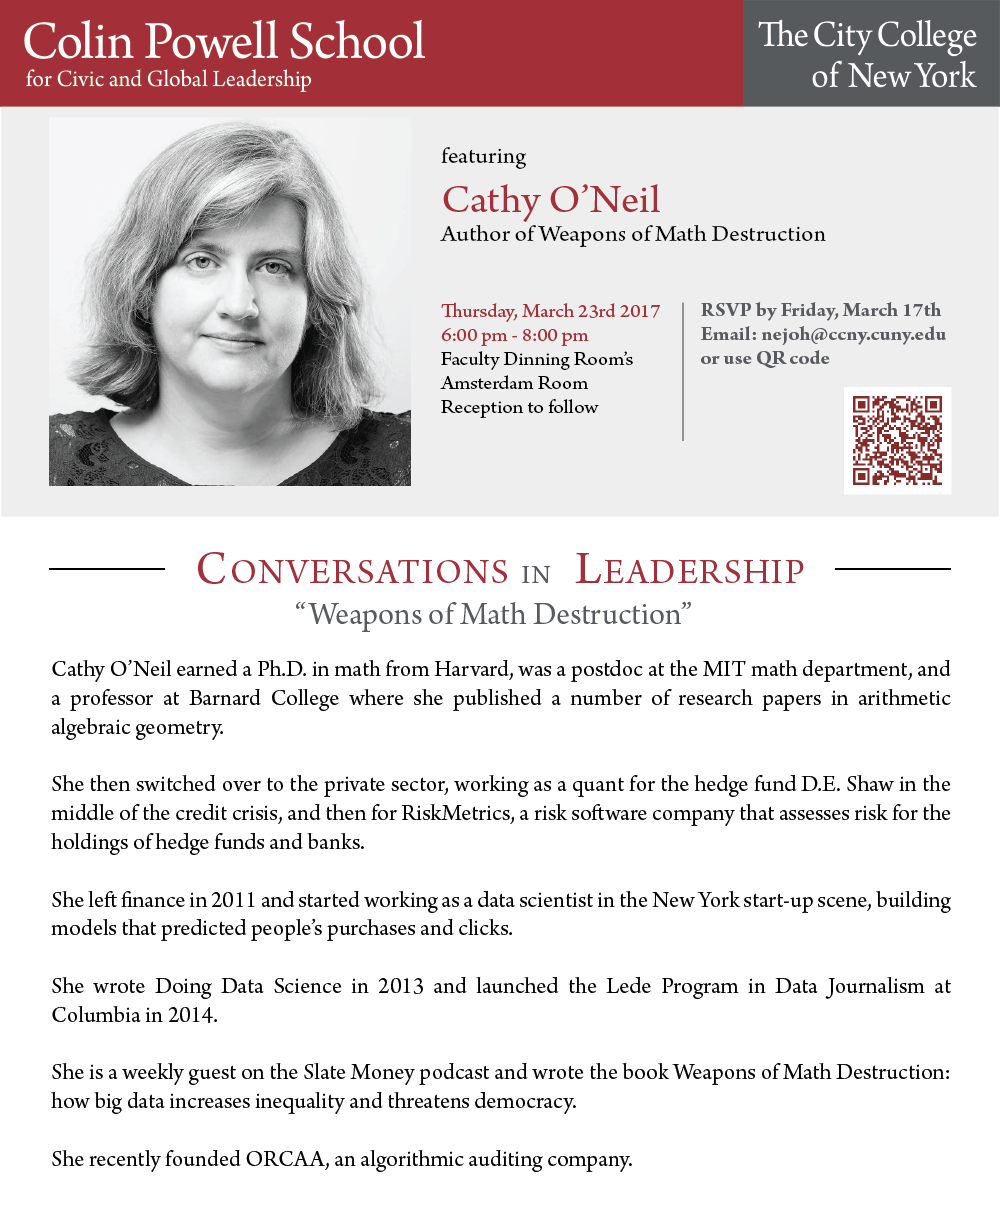 "Conversations in Leadership featuring Cathy O'Neil ""Weapons of Math Destruction"""